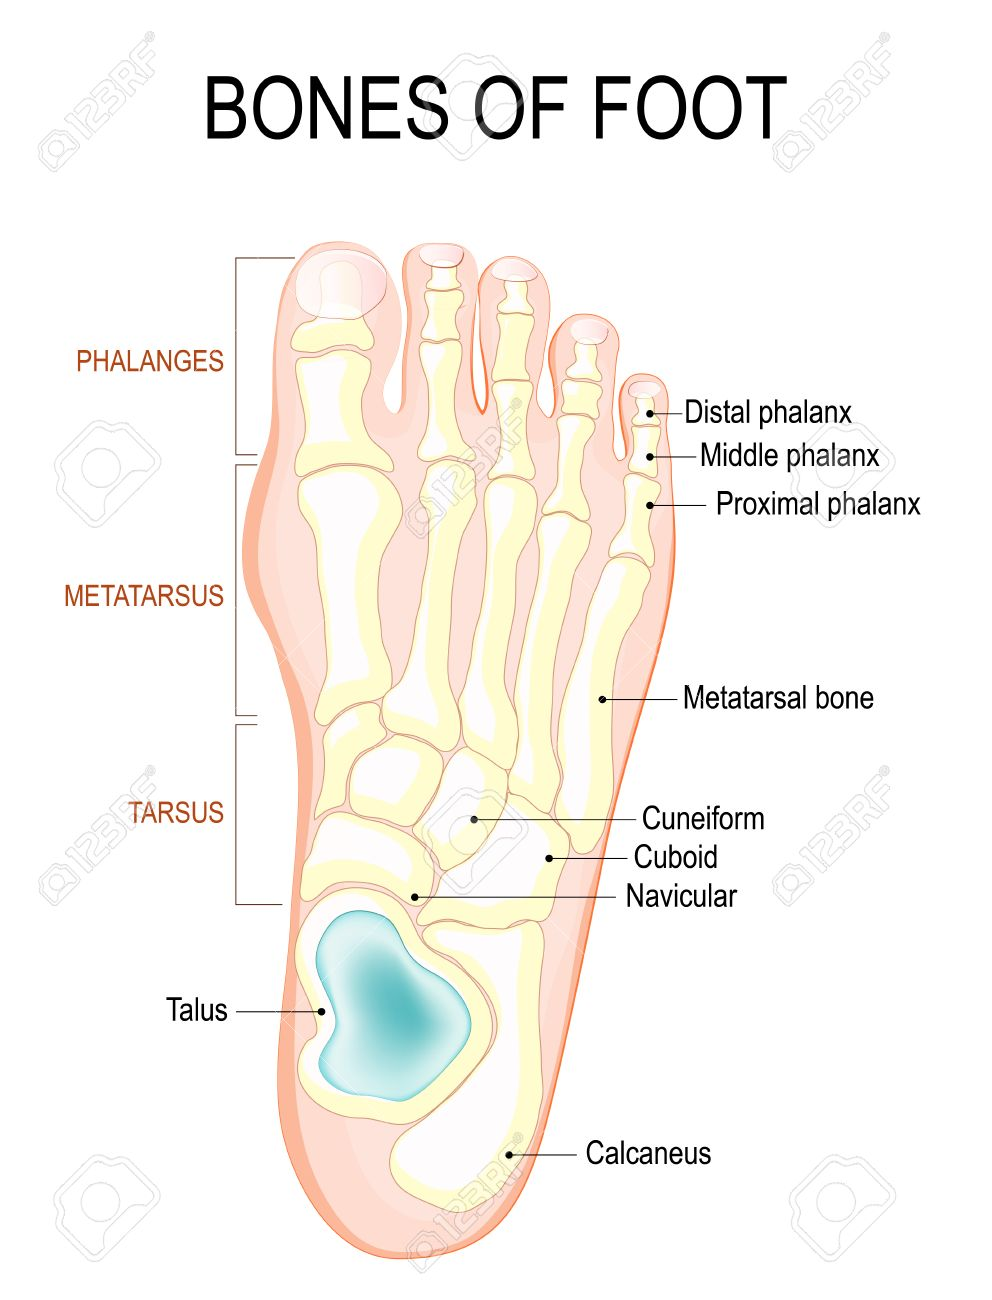 hight resolution of bones of foot human anatomy the diagram shows the placement and names of all